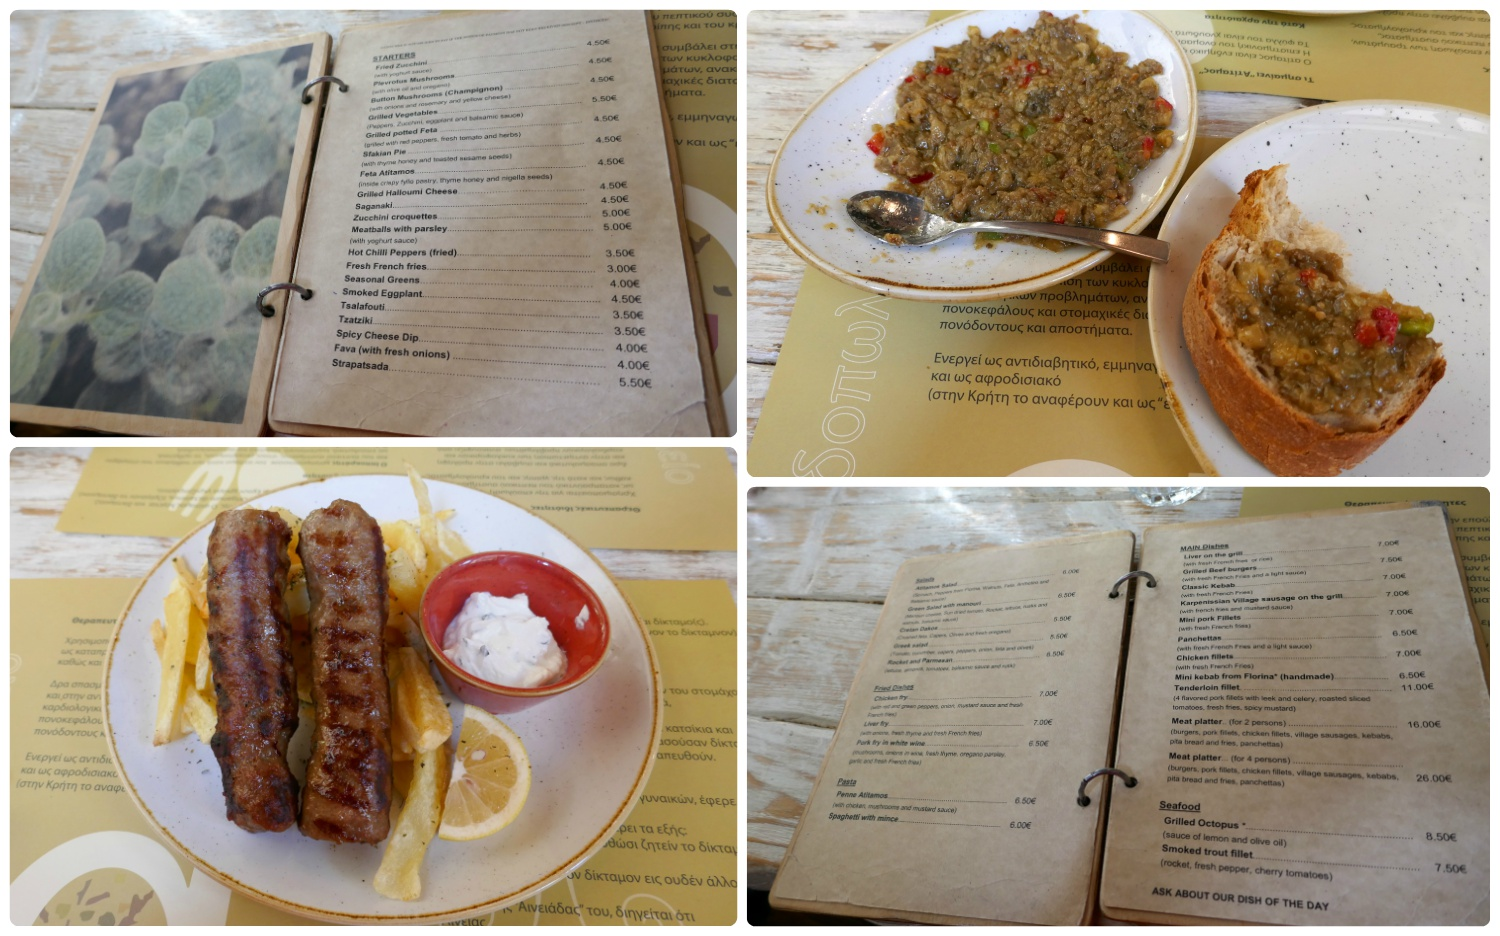 Atitamos restaurant, Athens Greece. Upper right image is our appetizer, Smoked Eggplant. On the lower left is our main dish, Kebab.